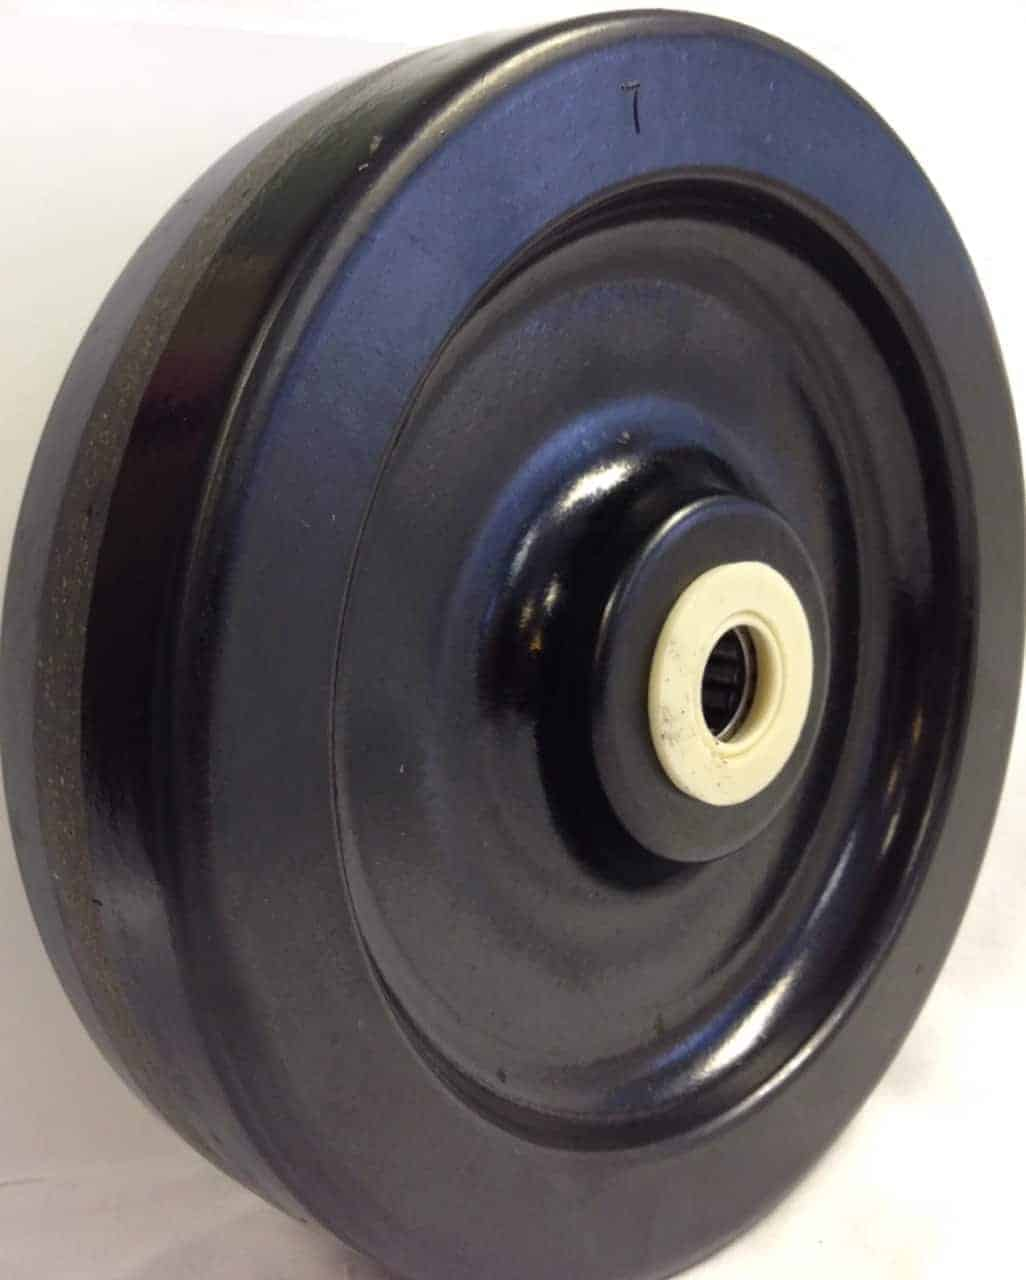 12″ Phenolic Wheel With 3-1/4″ Hub 1-1/4″ Roller Bearing 3000 Lbs Capacity